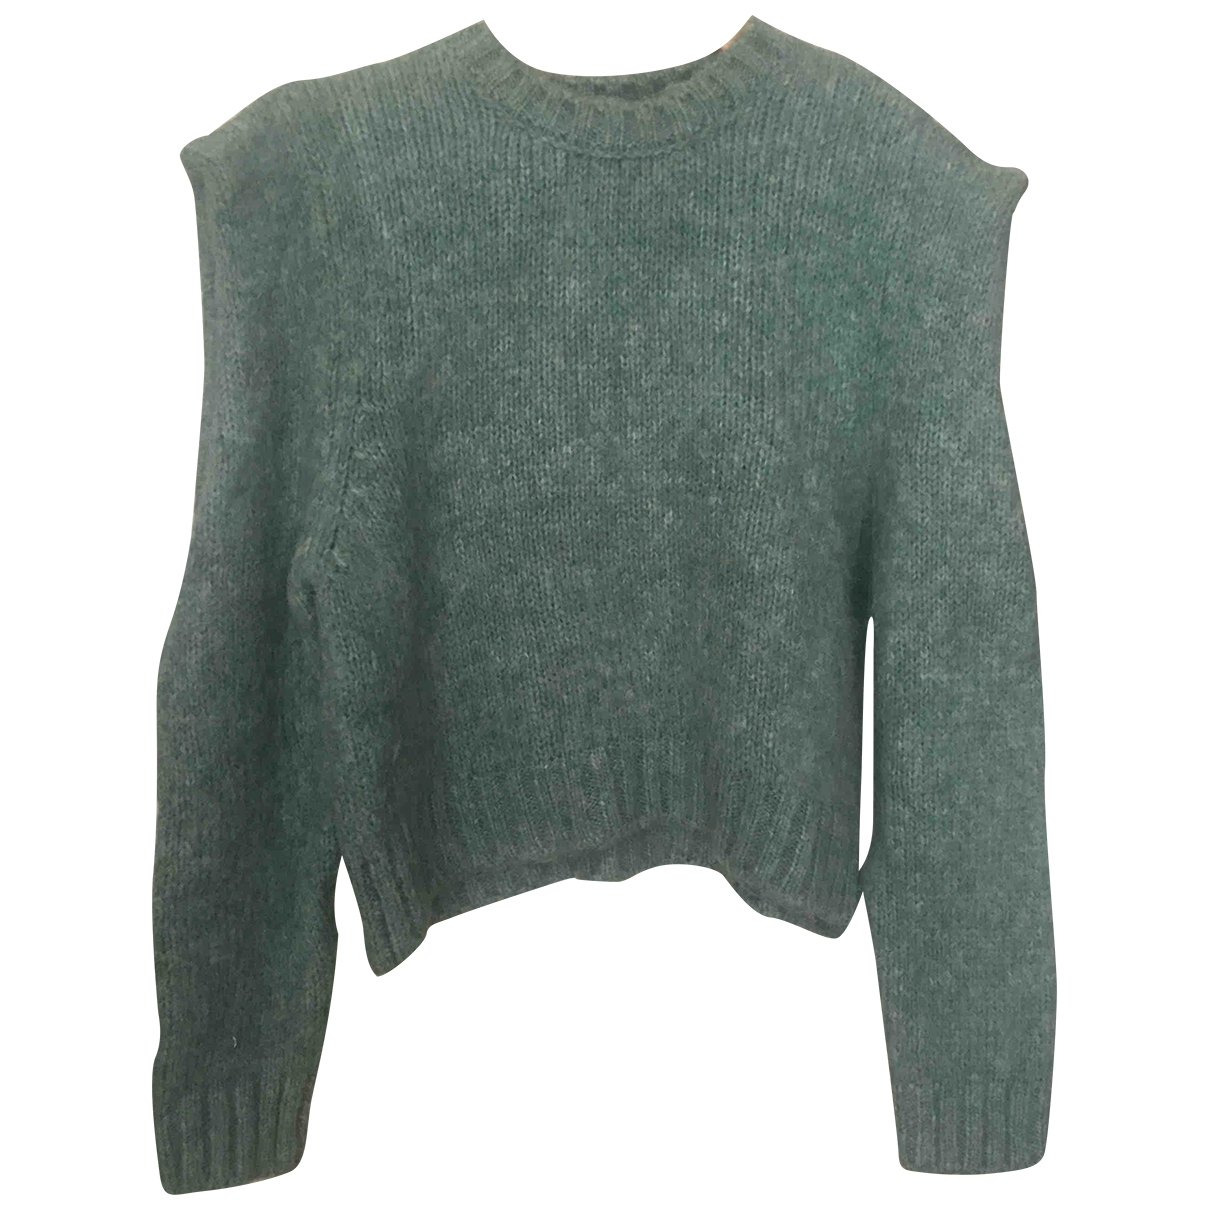 Non Signé / Unsigned \N Knitwear for Women One Size FR